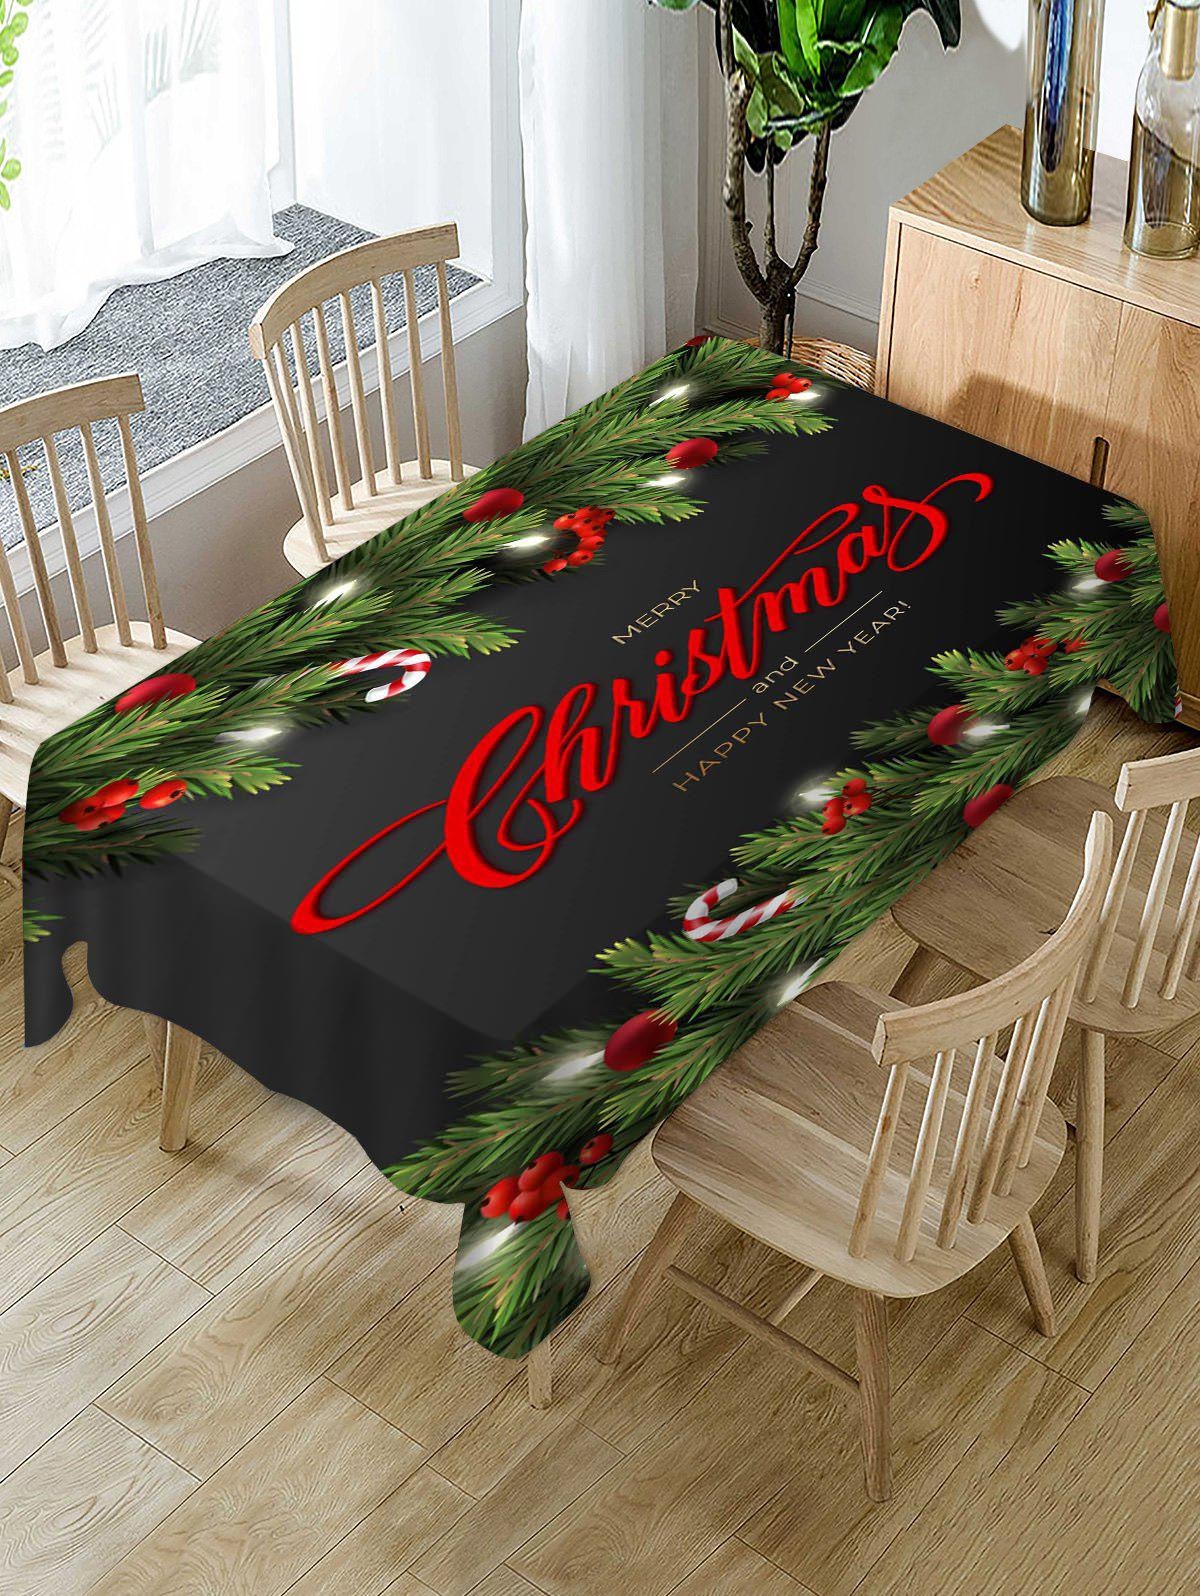 Chic Christmas Greeting Ball Branches Print Waterproof Fabric Tablecloth